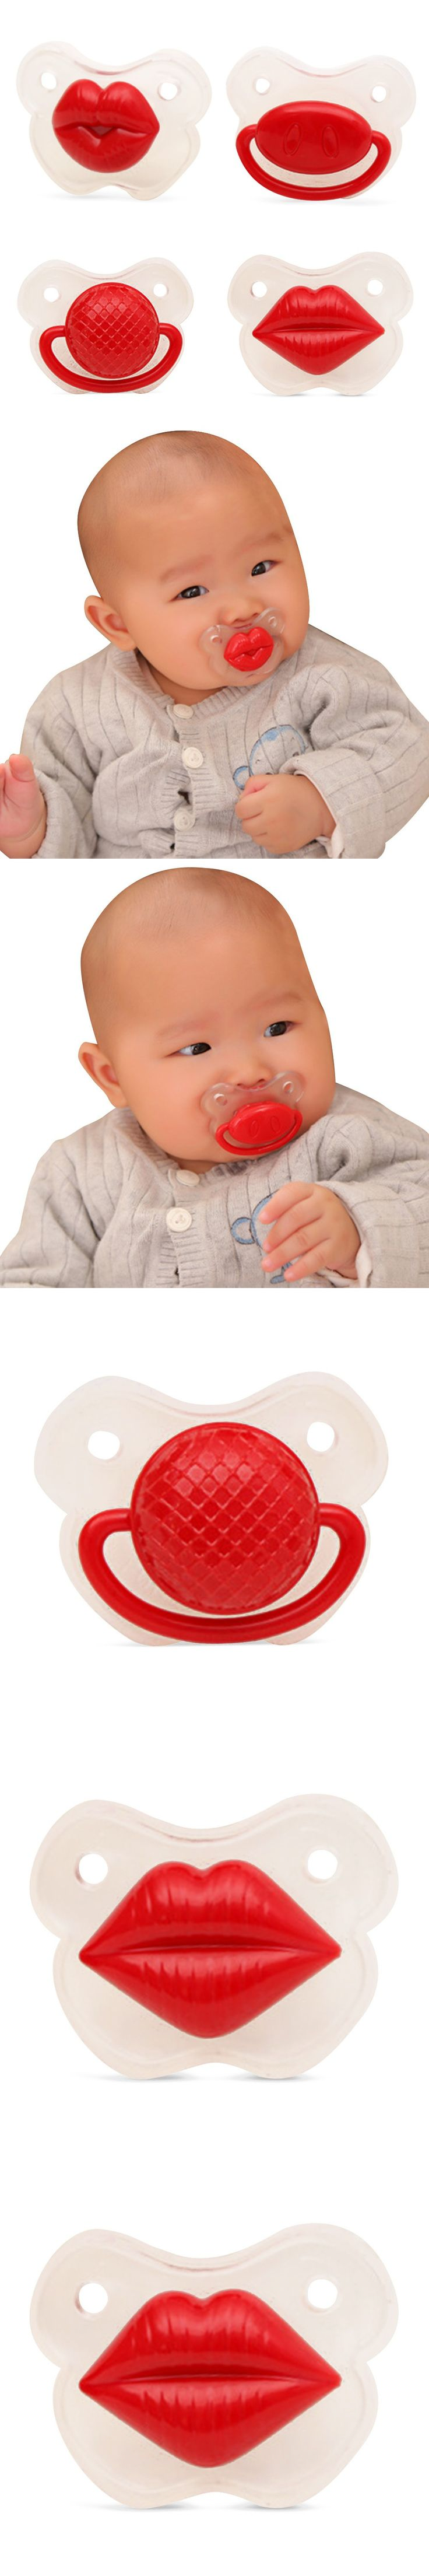 Funny Newborn Infant Pacifier Safety Top Silicone Cute Baby Soother Joke Prank Toddler Baby Kids Pacifiers Clips Feeding Care $2.69